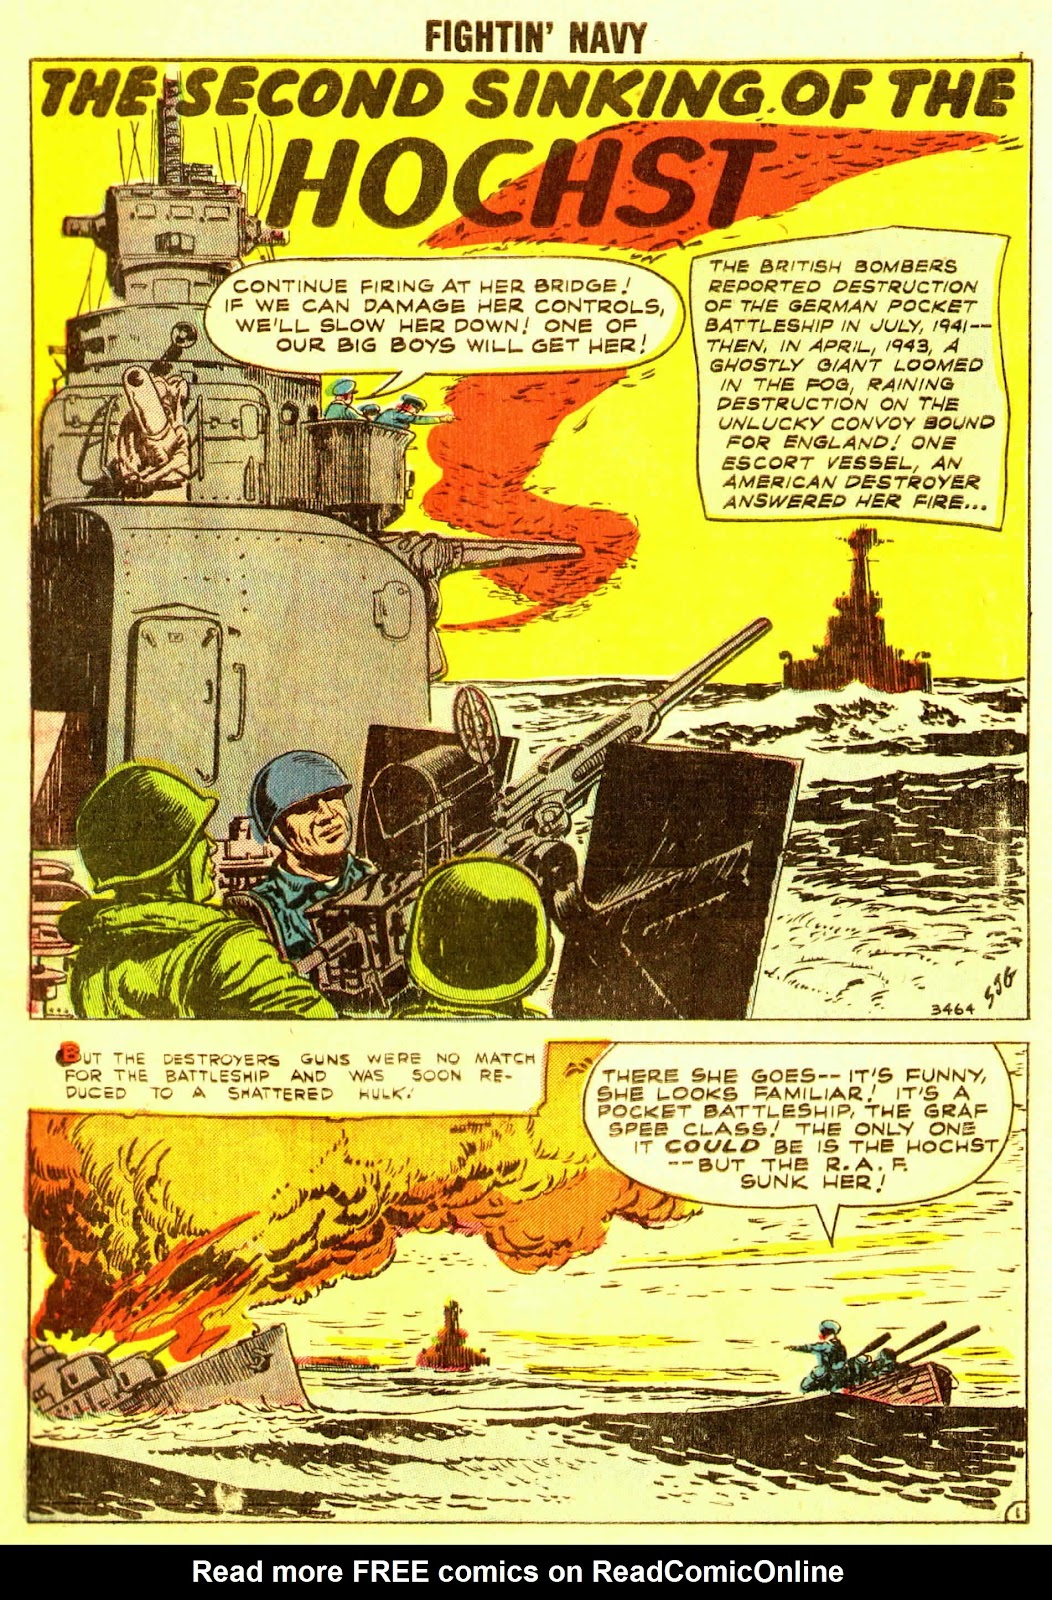 Read online Fightin' Navy comic -  Issue #83 - 3